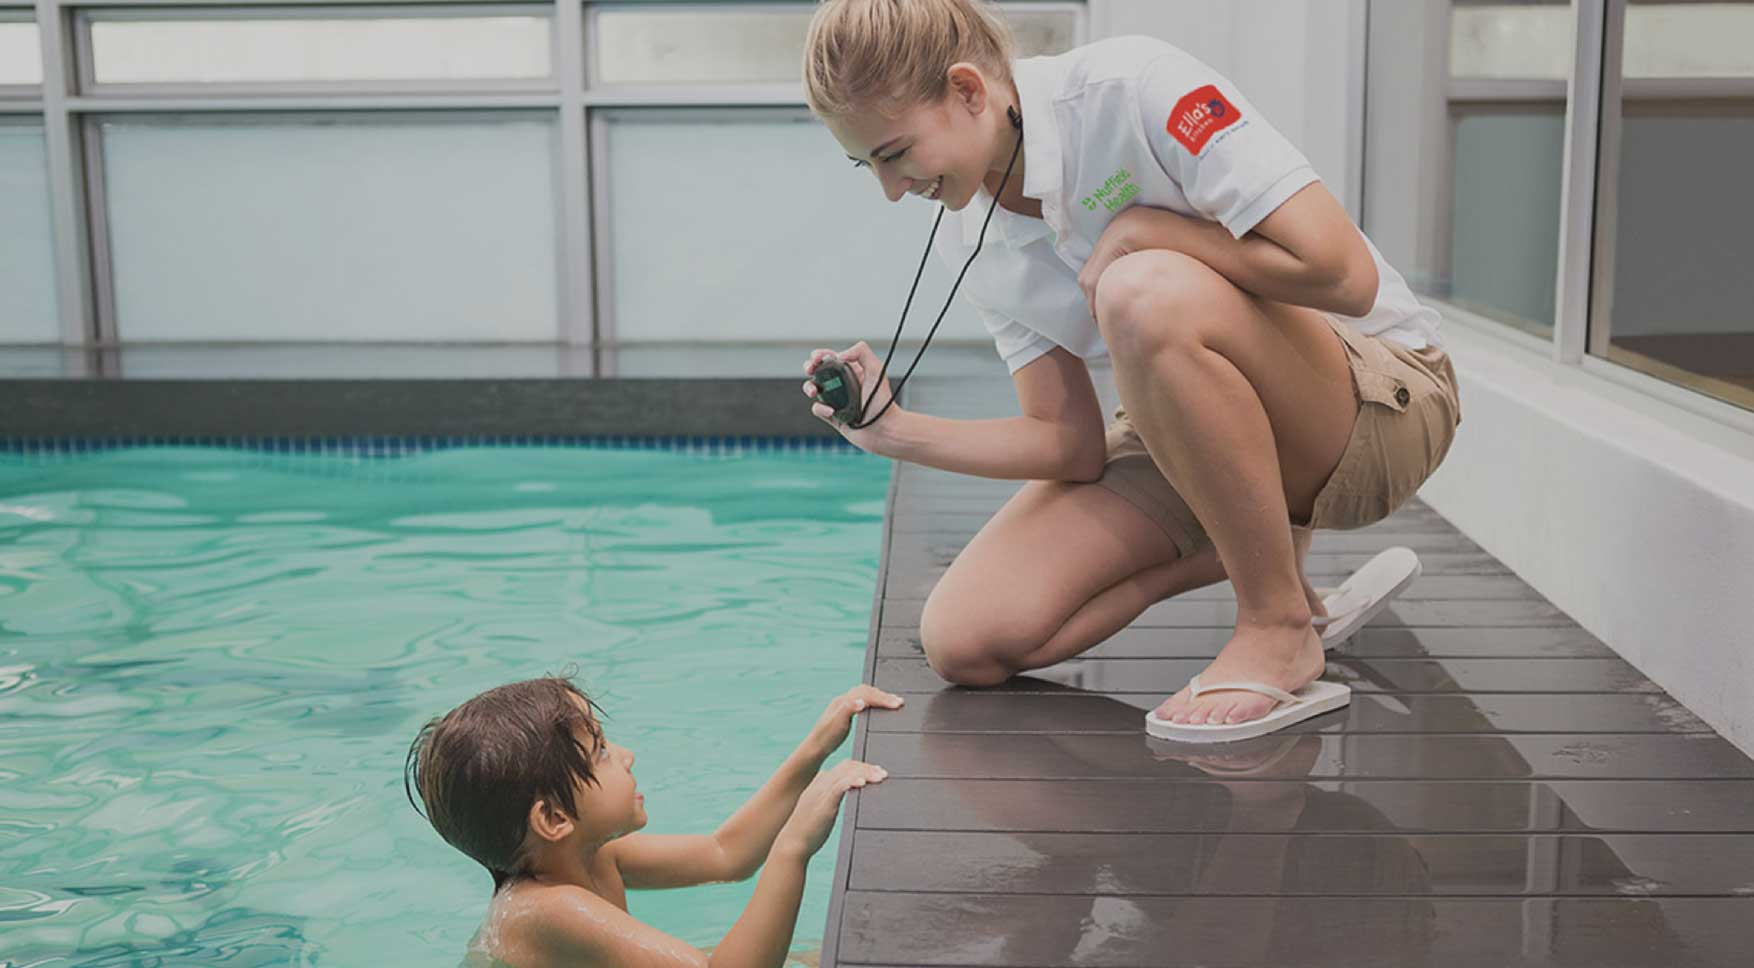 Woman in gym pool teaching a child swimming lessons